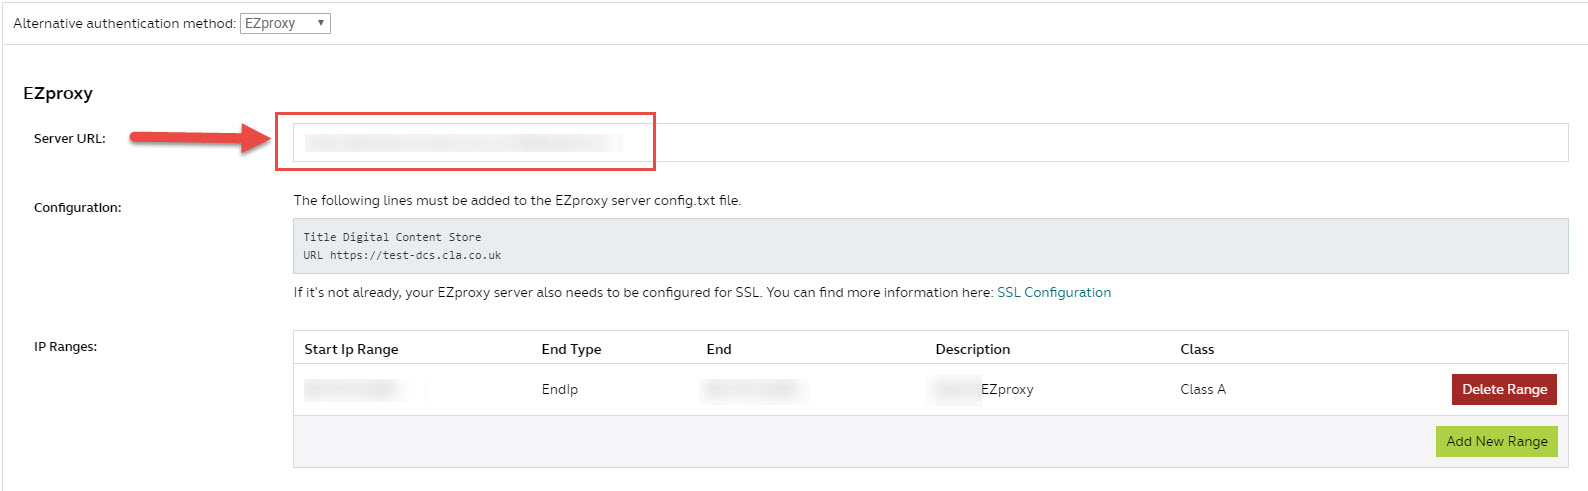 EZproxy authentication with the DCS – Digital Content Store